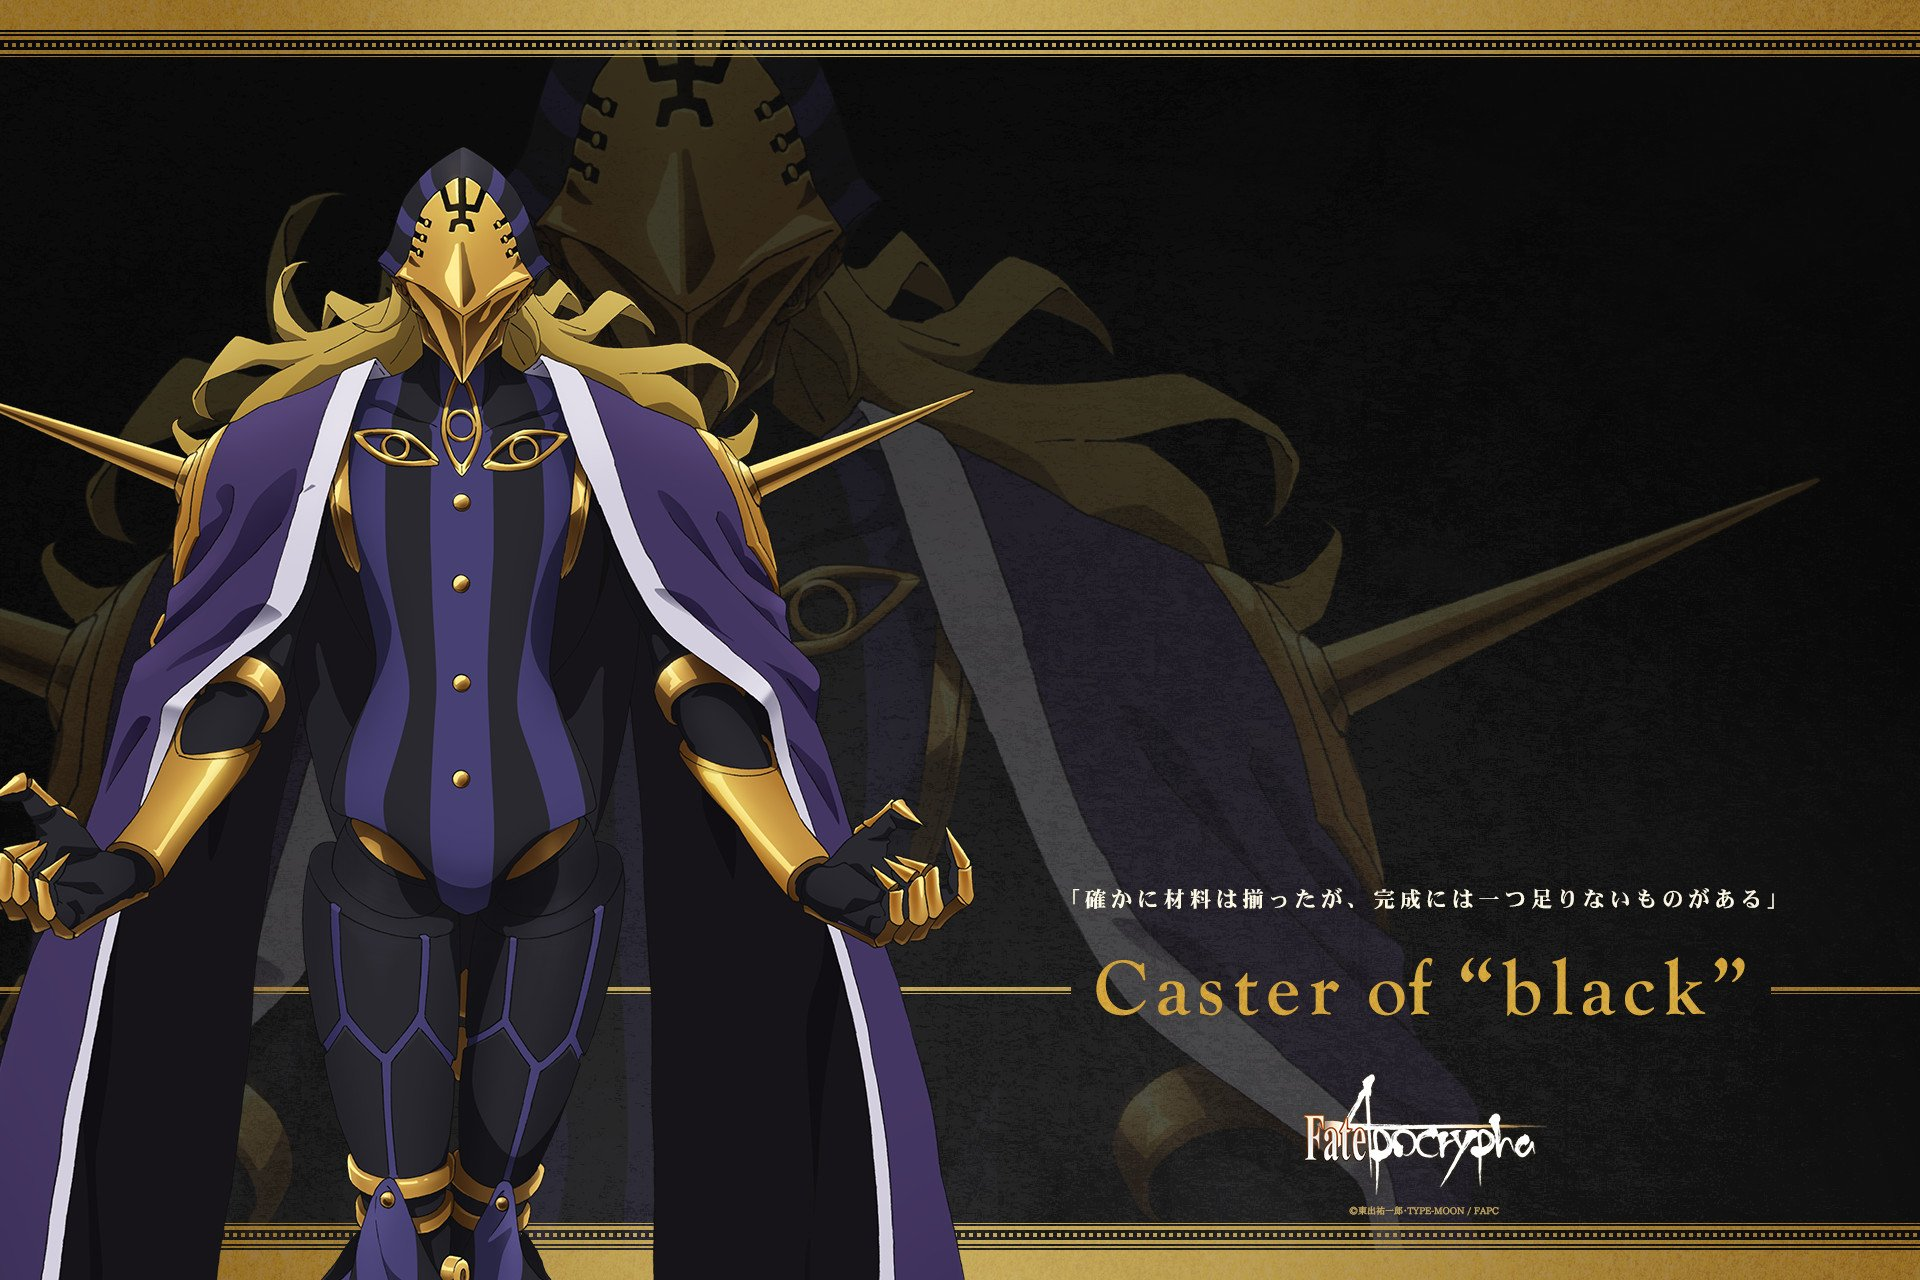 Anime - Fate/Apocrypha Caster of Black (Fate/Apocrypha) Wallpaper